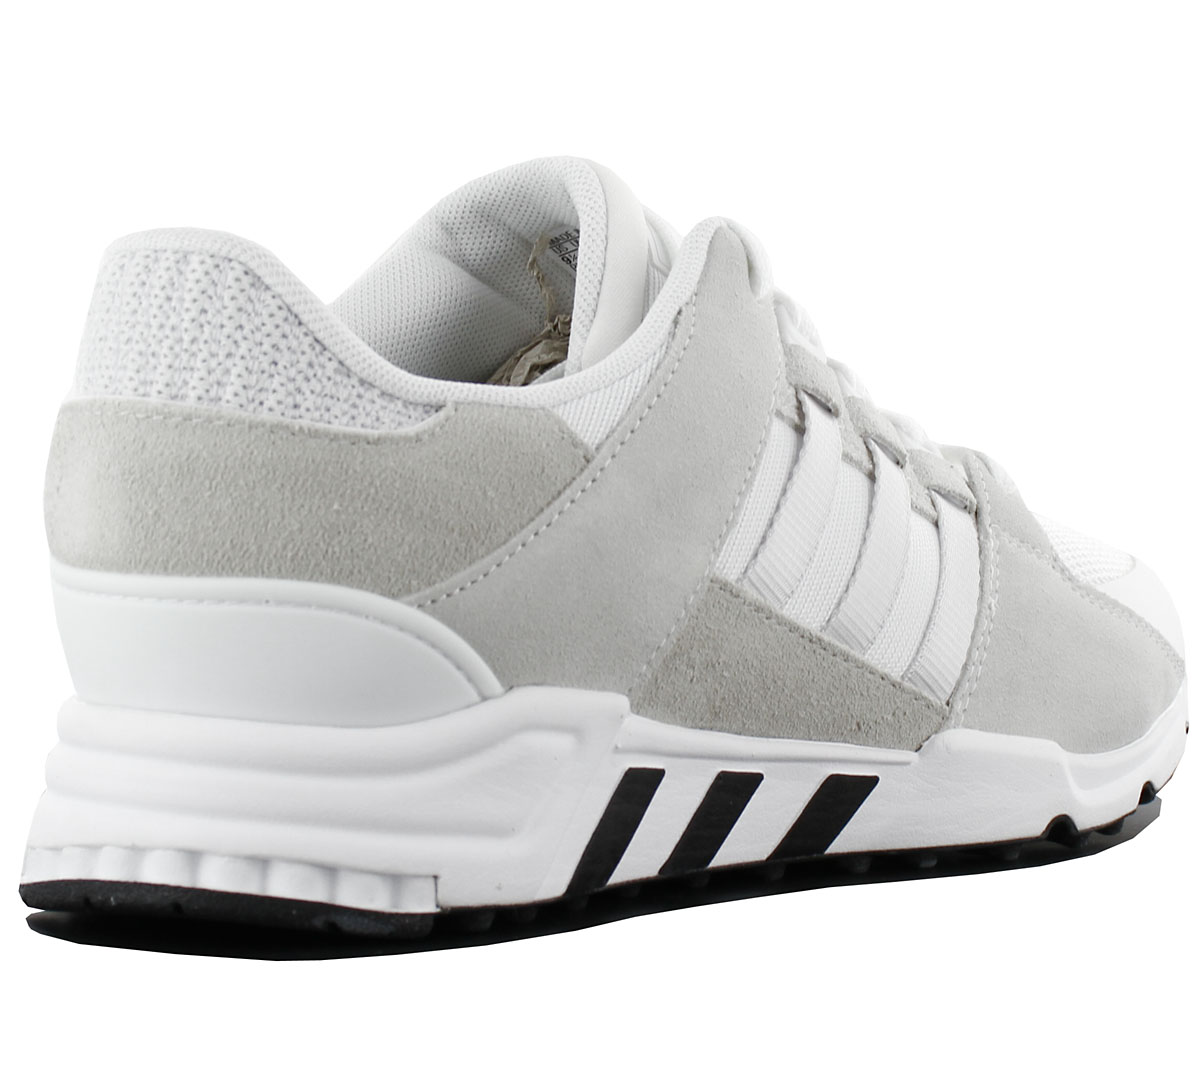 online store c6fe8 b1626 Adidas Originals Eqt Equipment Support RF Shoes Trainers BY9